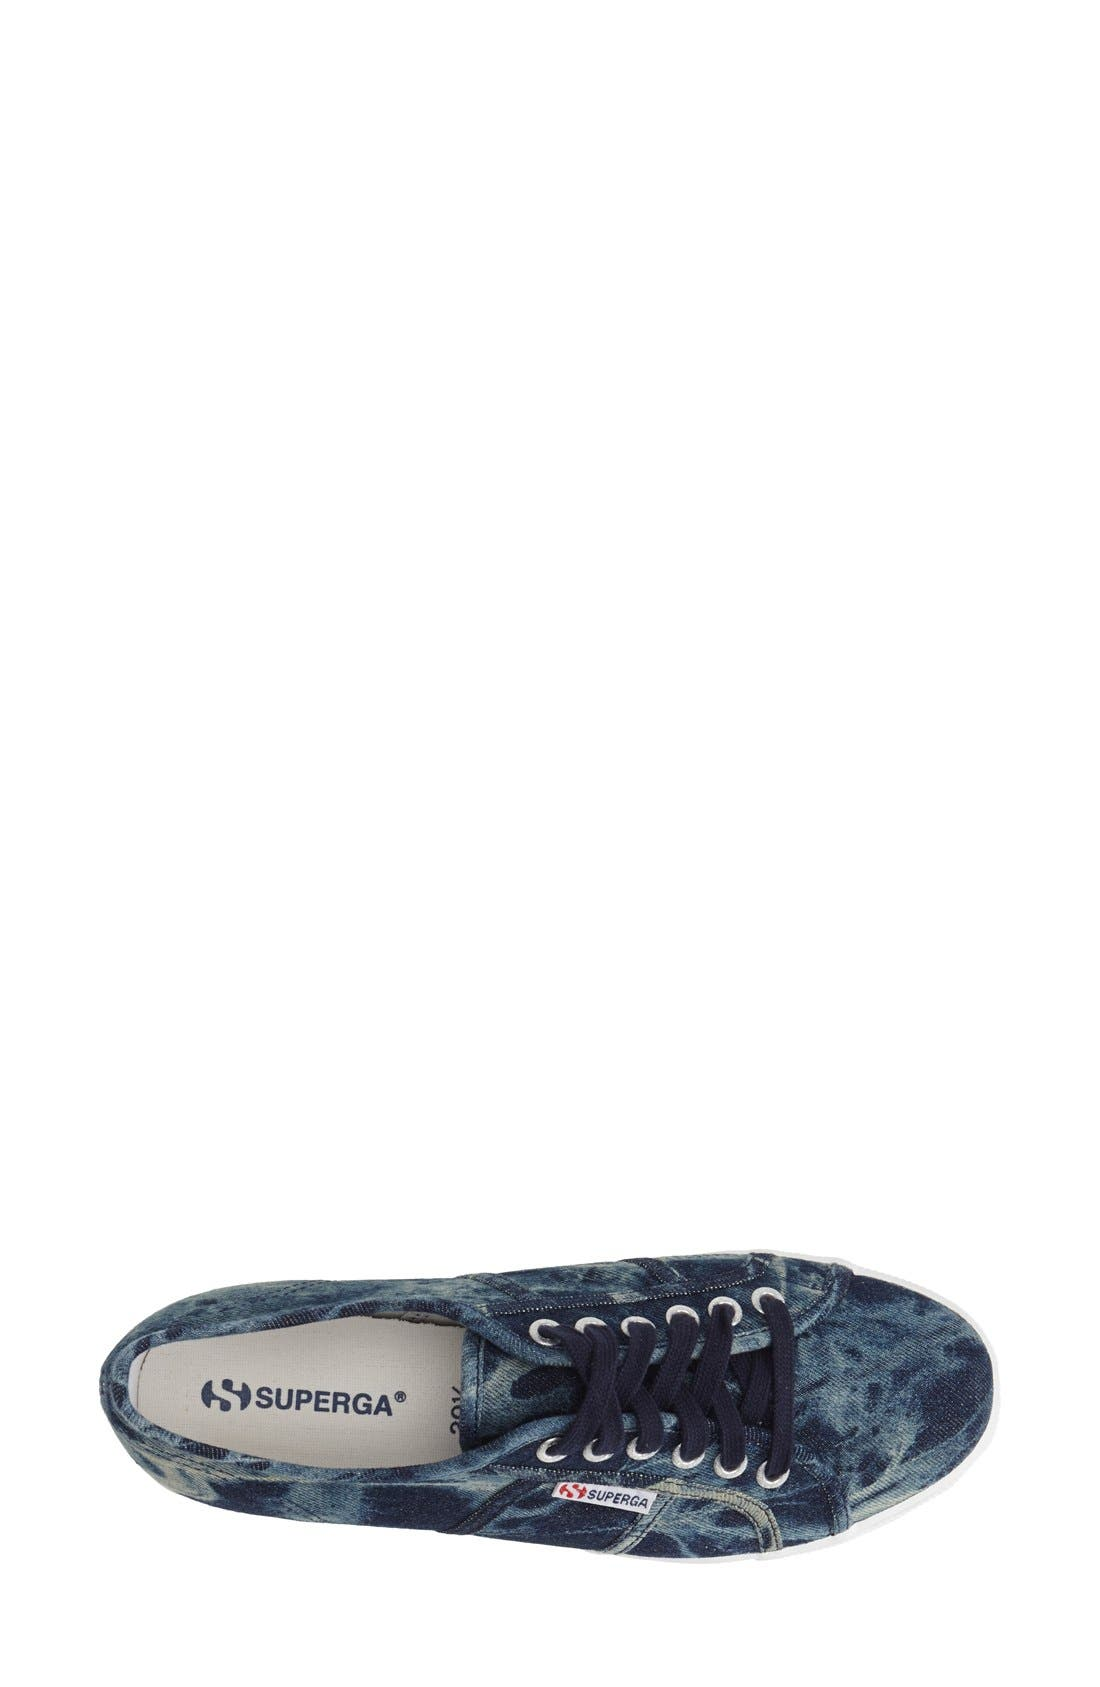 Alternate Image 3  - Superga Tie Dye Platform Sneaker (Women)